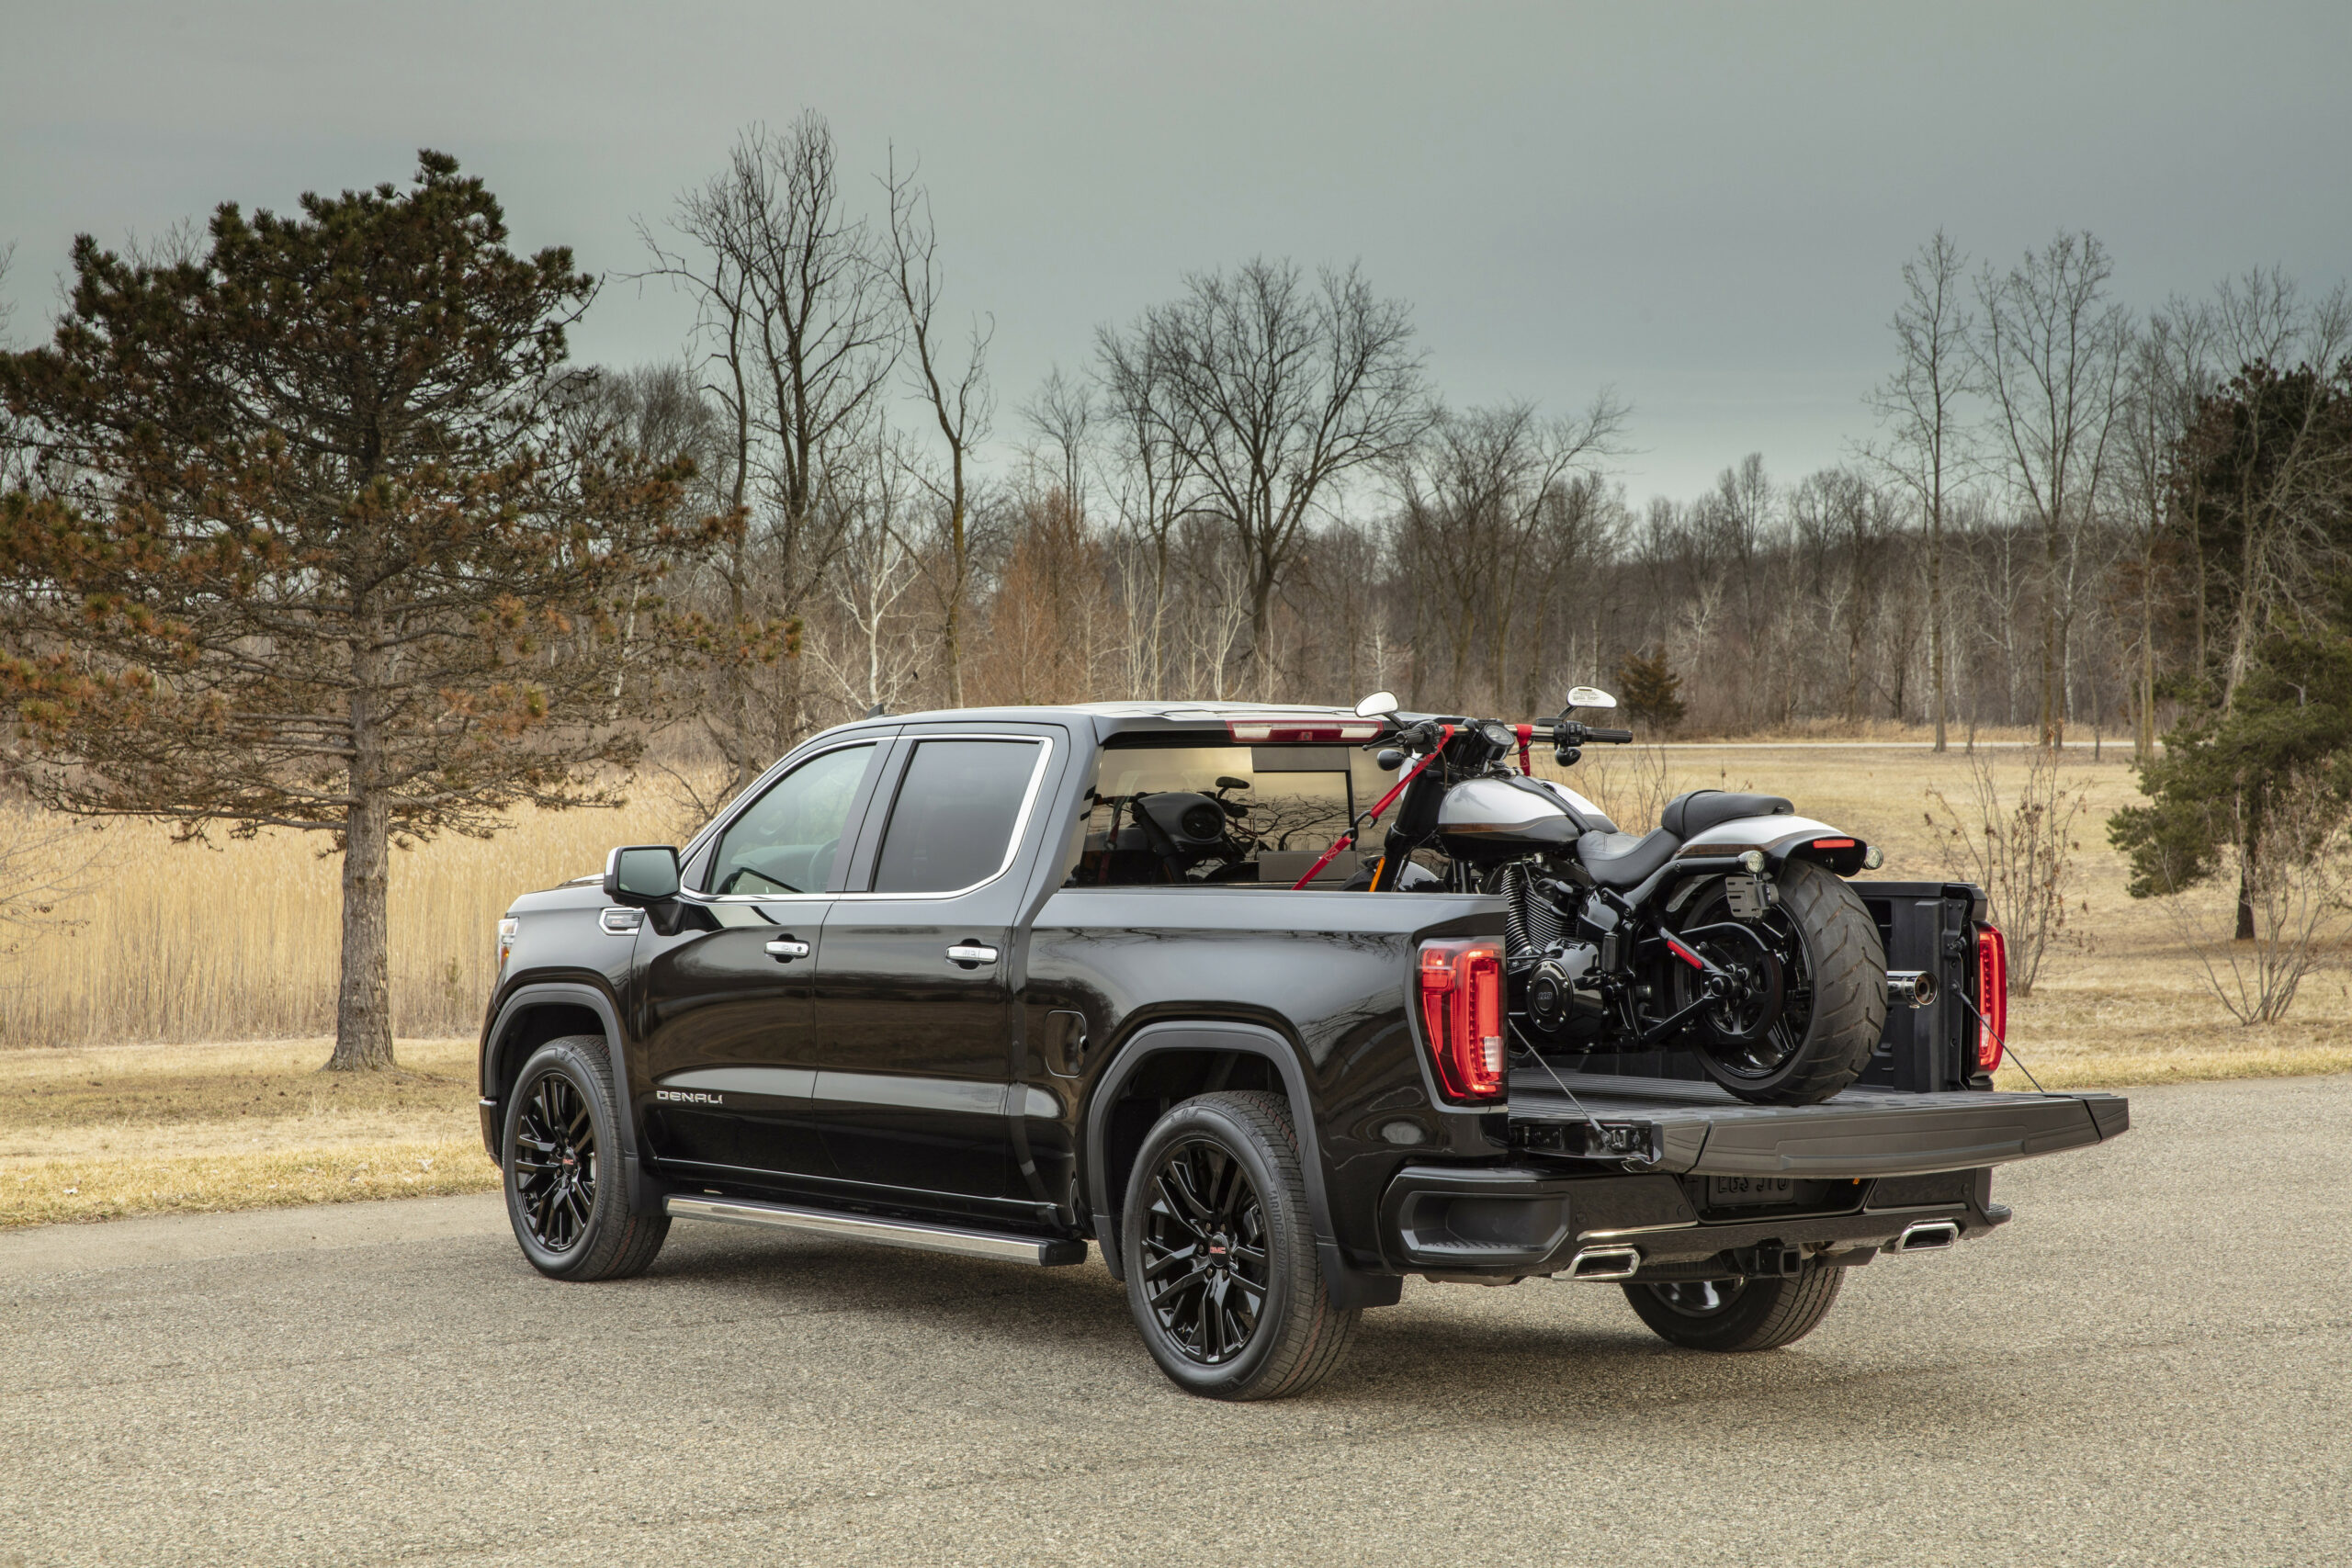 GMC Innovation Continues with 8 Sierra 8 - gmc rebates 2020 sierra